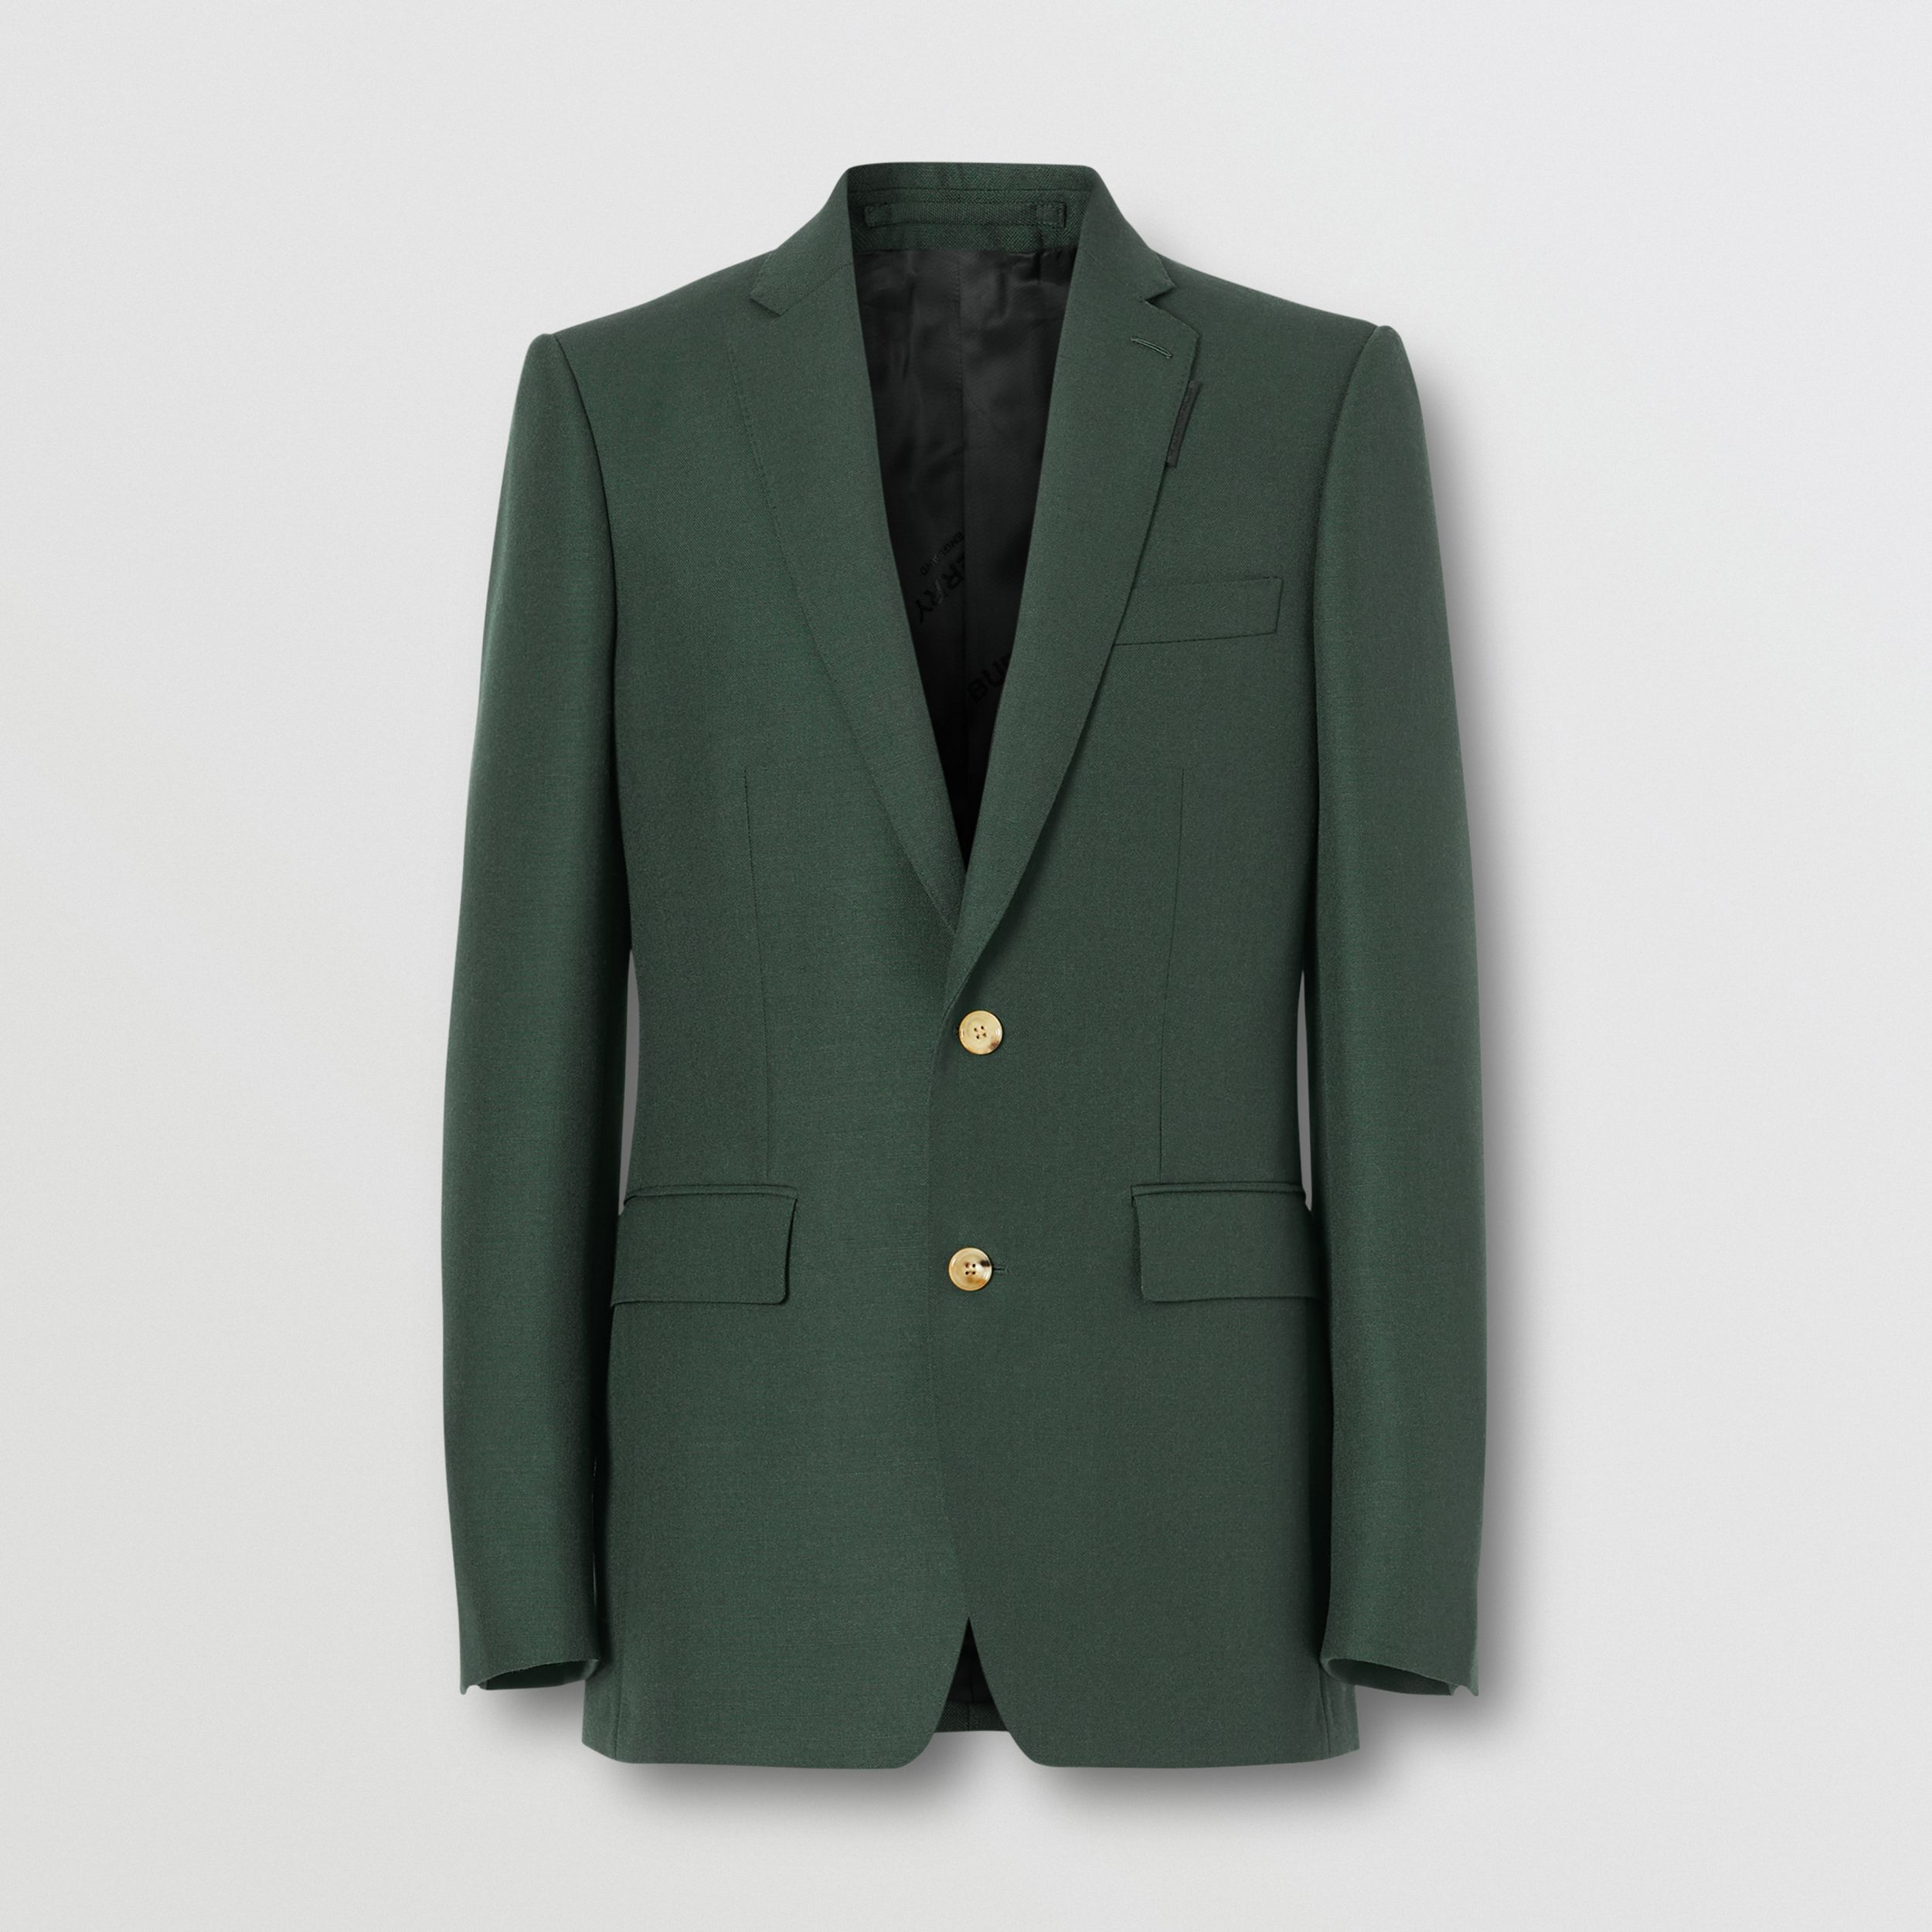 English Fit Wool Mohair Tailored Jacket in Dark Forest Green - Men | Burberry - 4